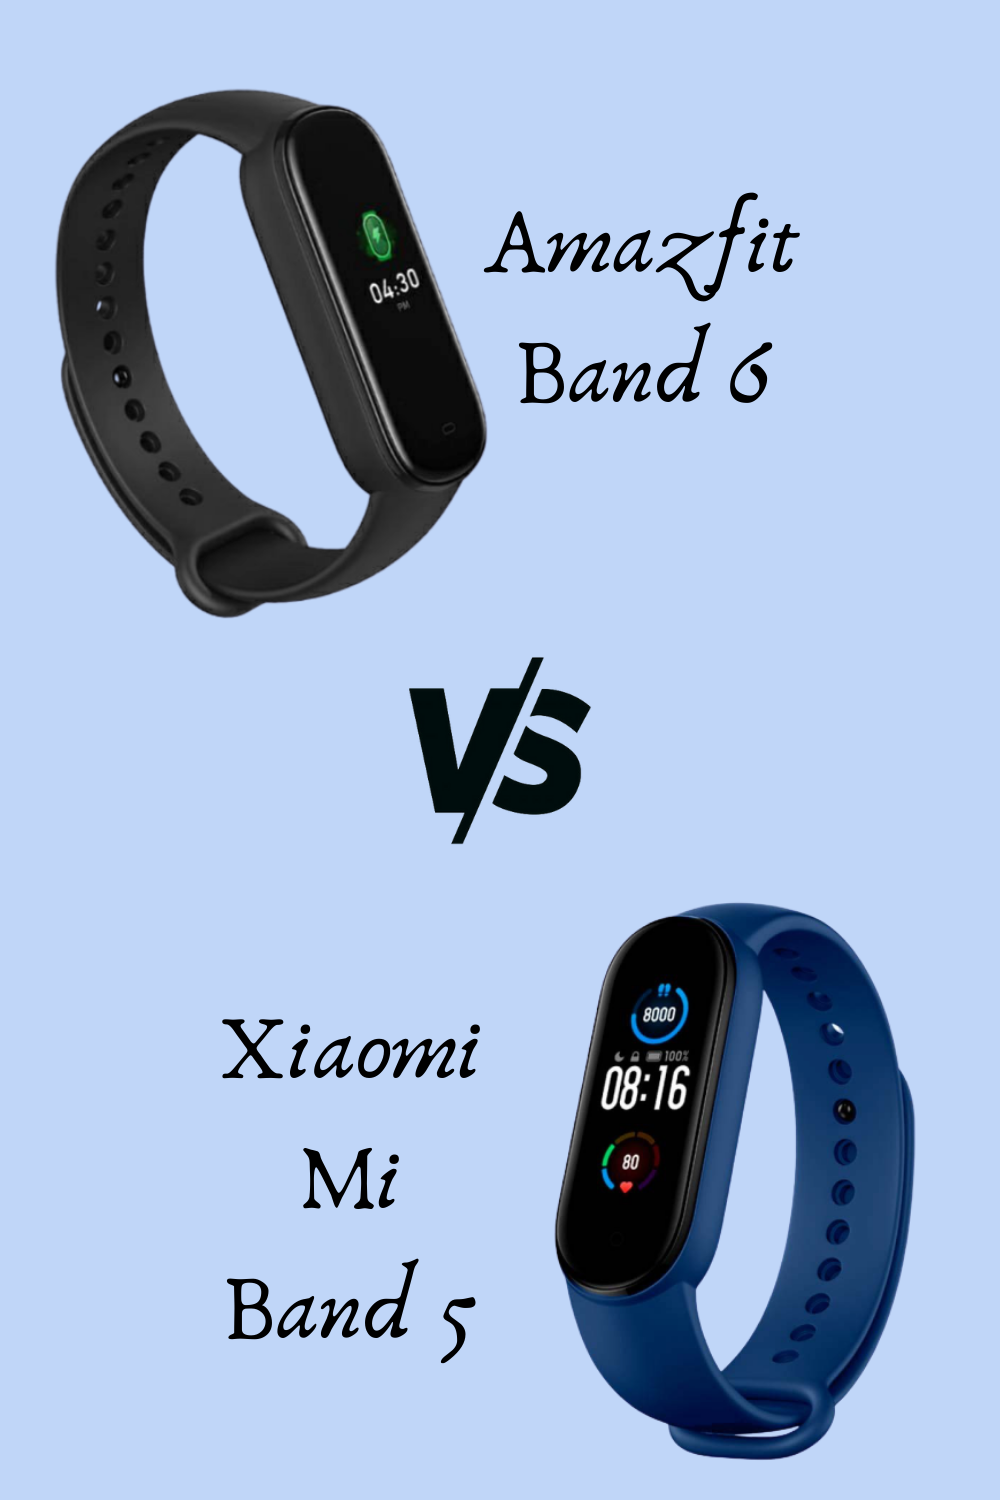 Amazfit Band 6 Vs Xiaomi Mi Band 5 What S The Difference Band Xiaomi Fitness Tracker